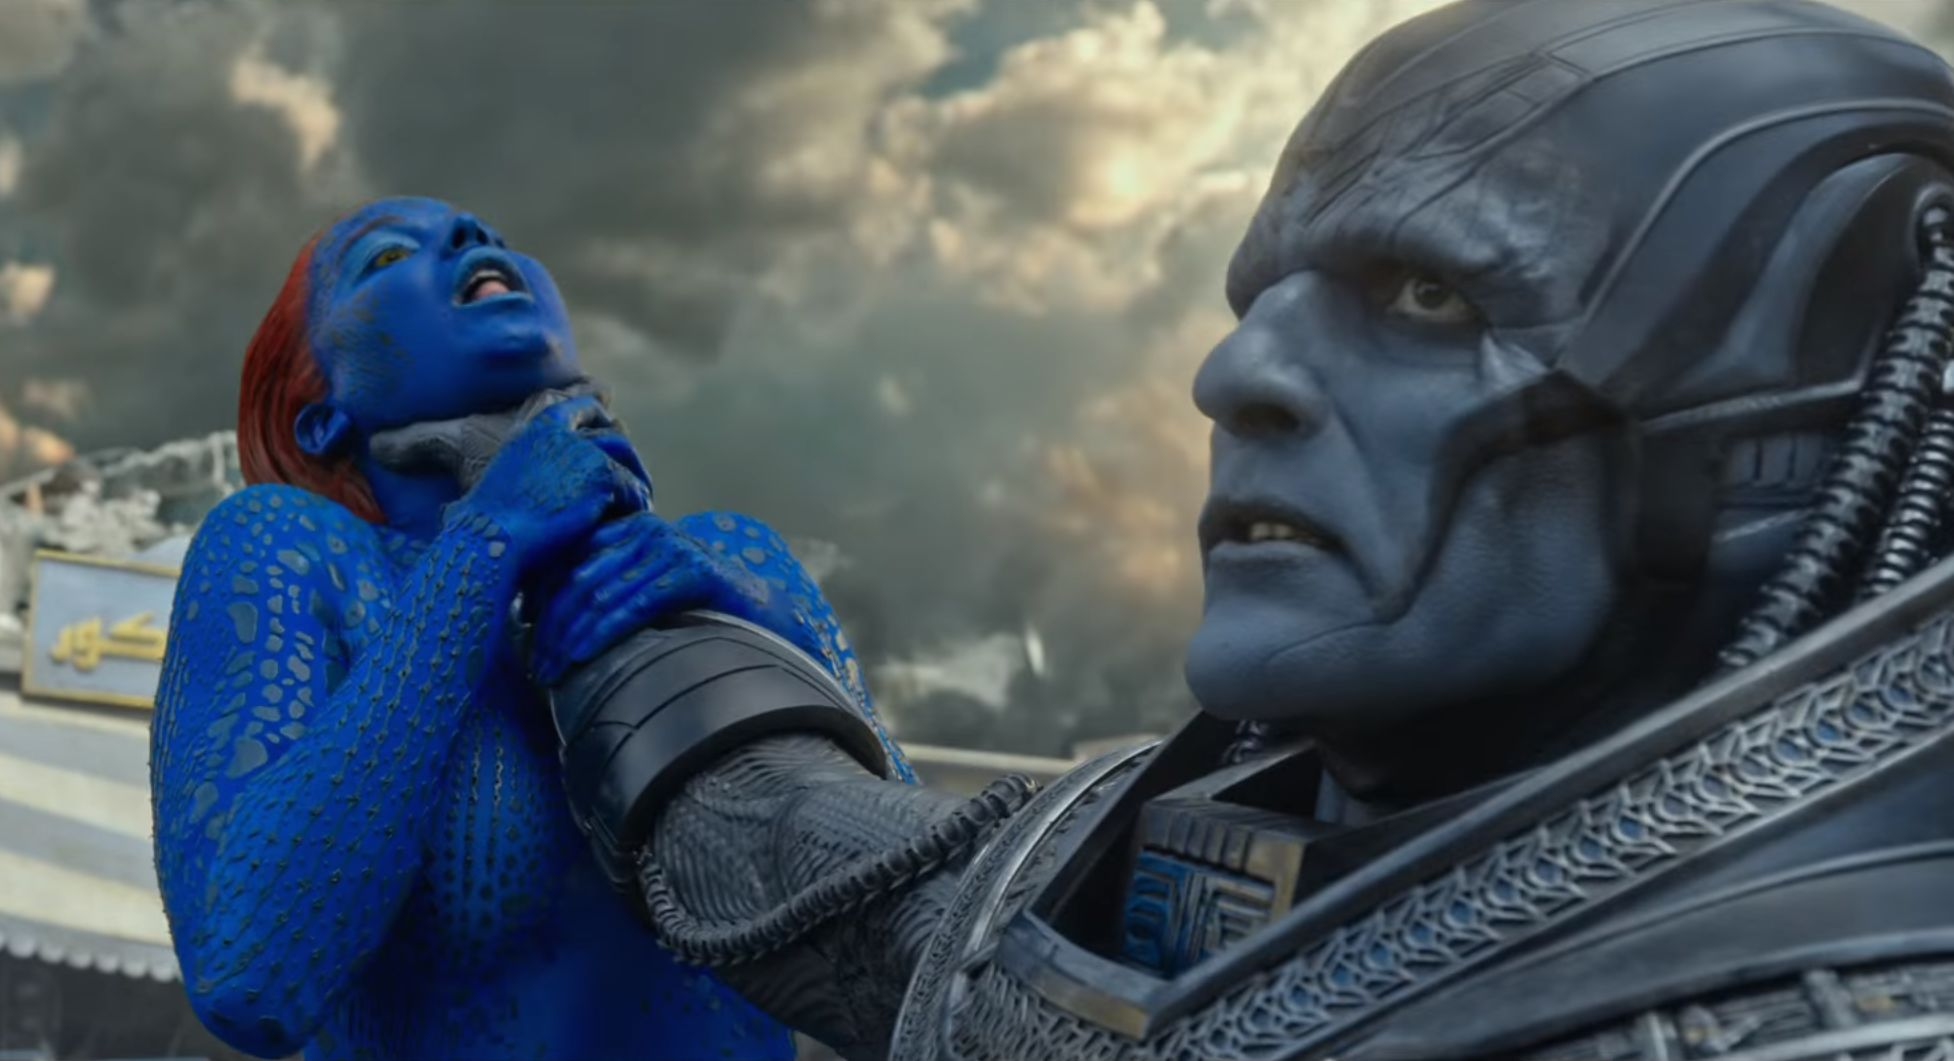 mystique-will-take-center-stage-in-x-men-apocalypse-but-is-it-her-last-hurrah-872188